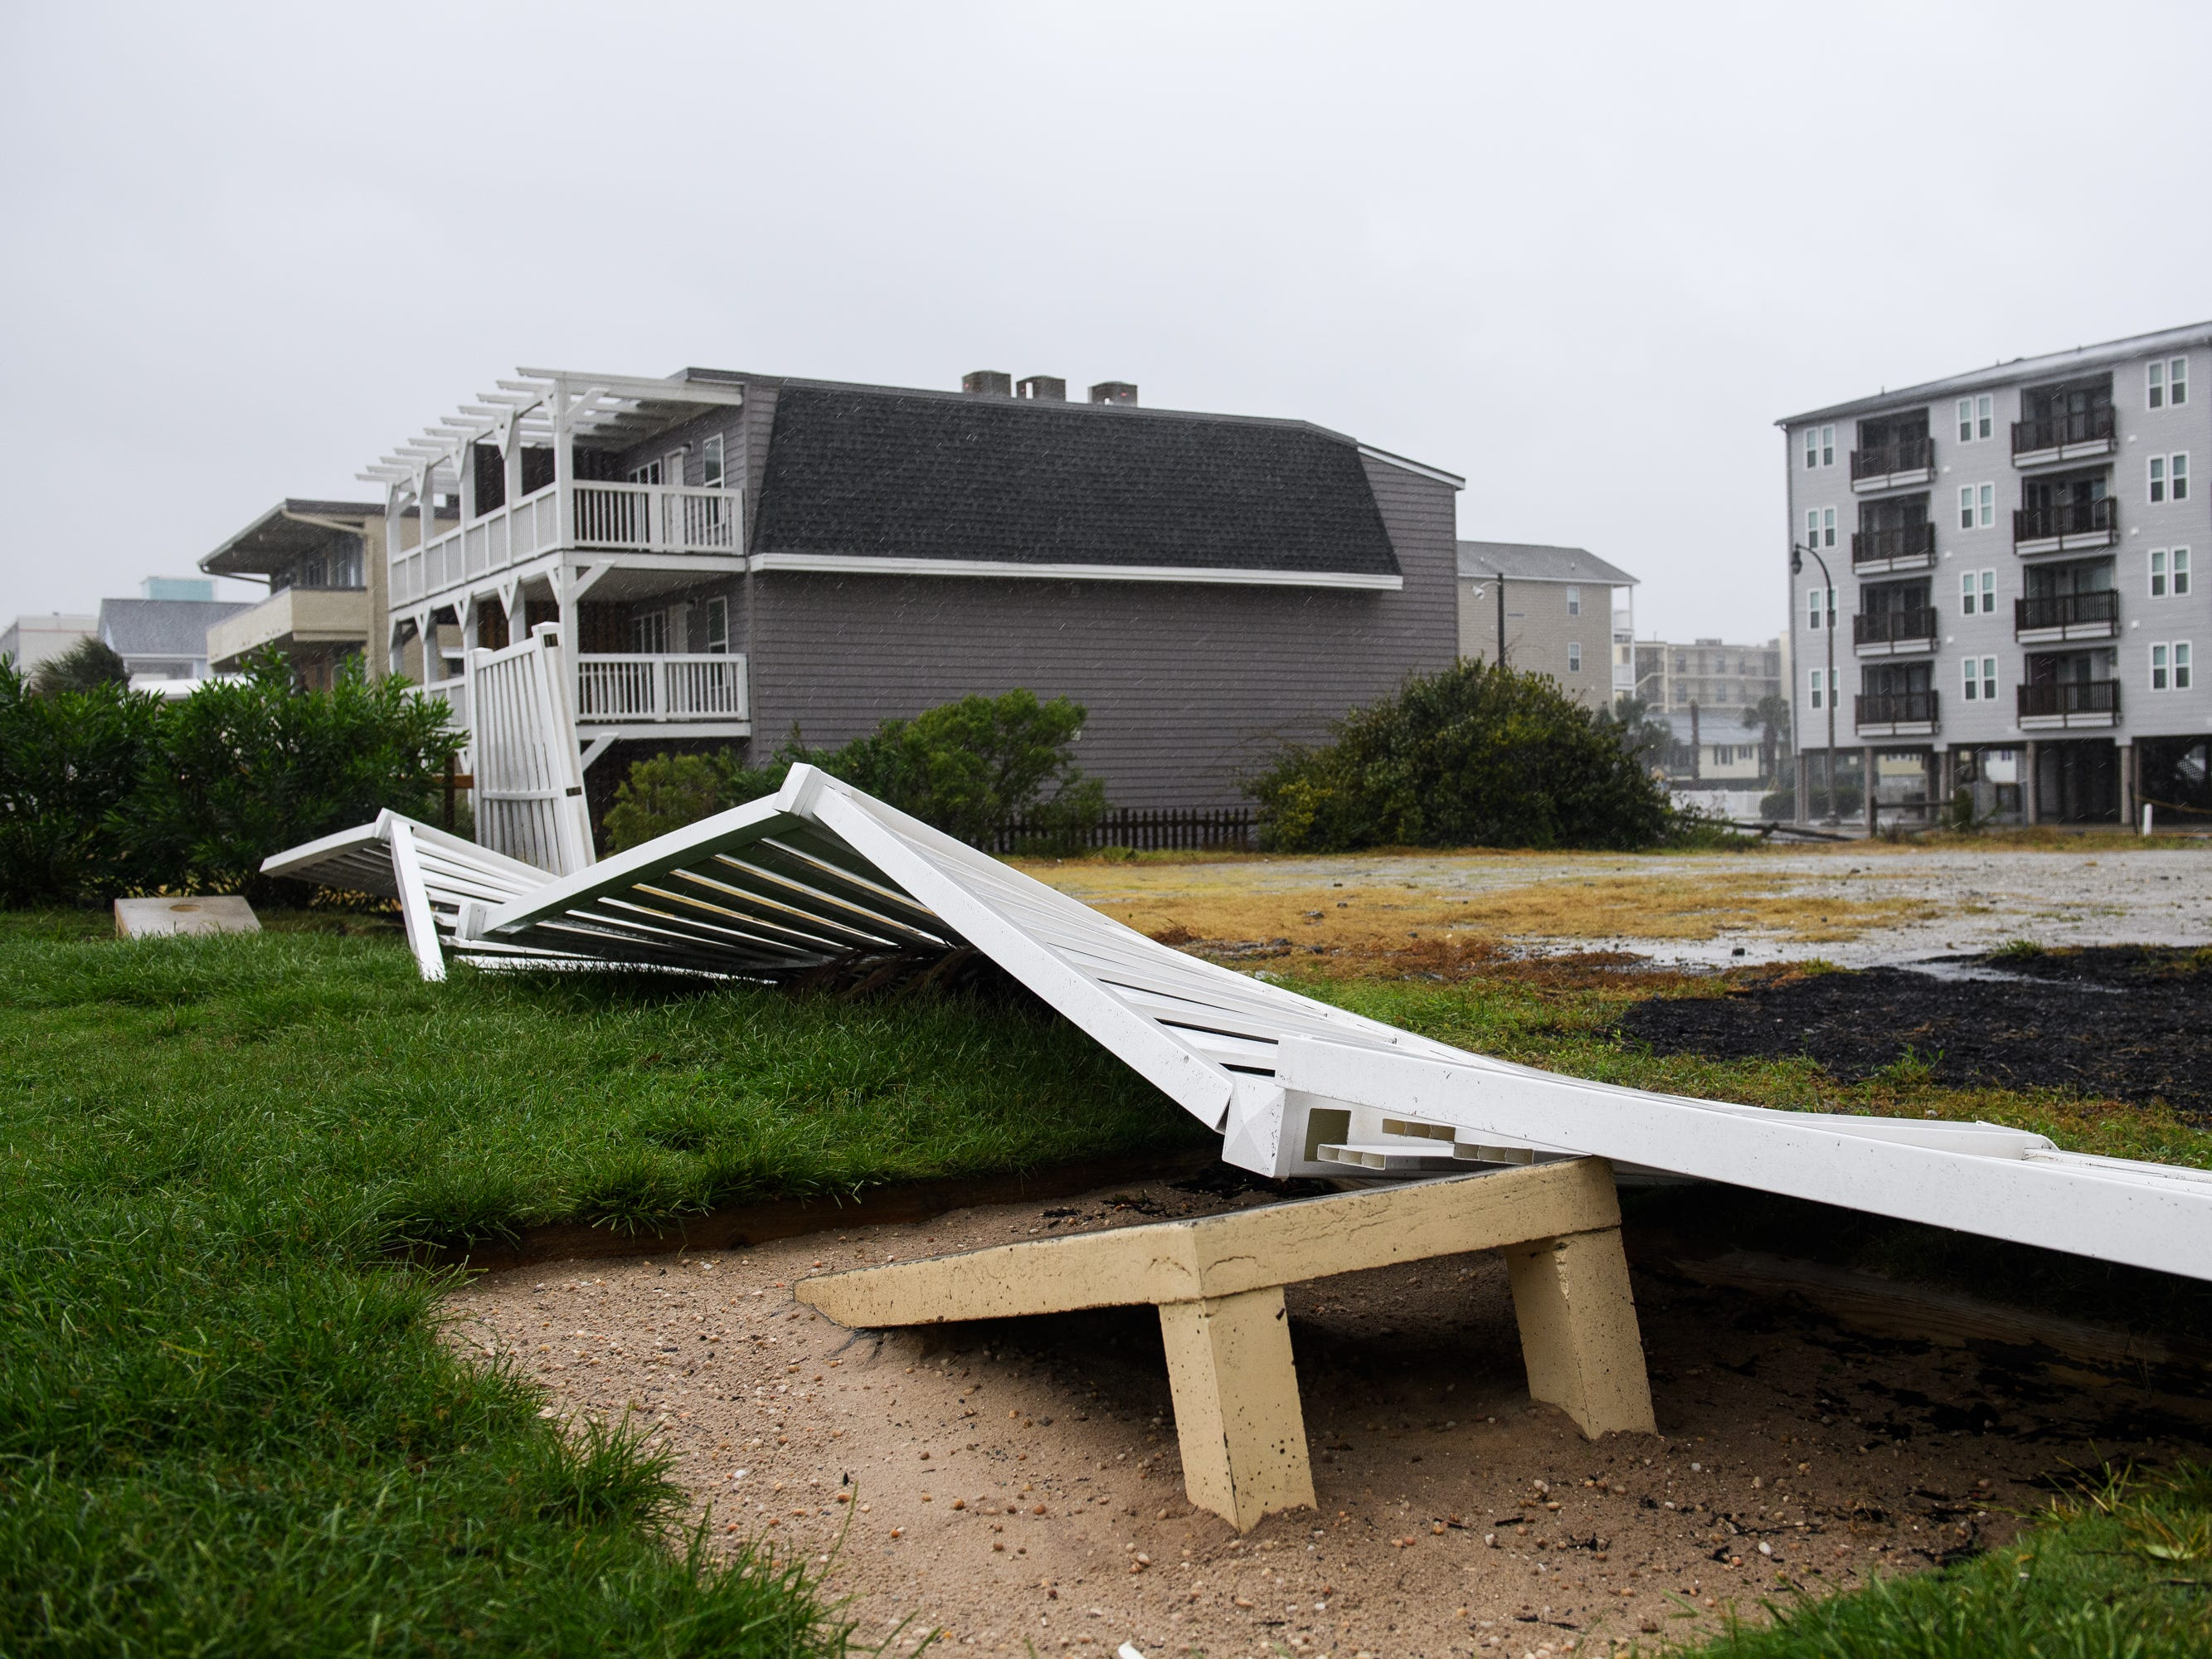 Fencing sits on the ground after being knocked over by strong winds as Hurricane Florence continues its slow path towards the North Myrtle Beach area on Friday, Sept. 14, 2018.